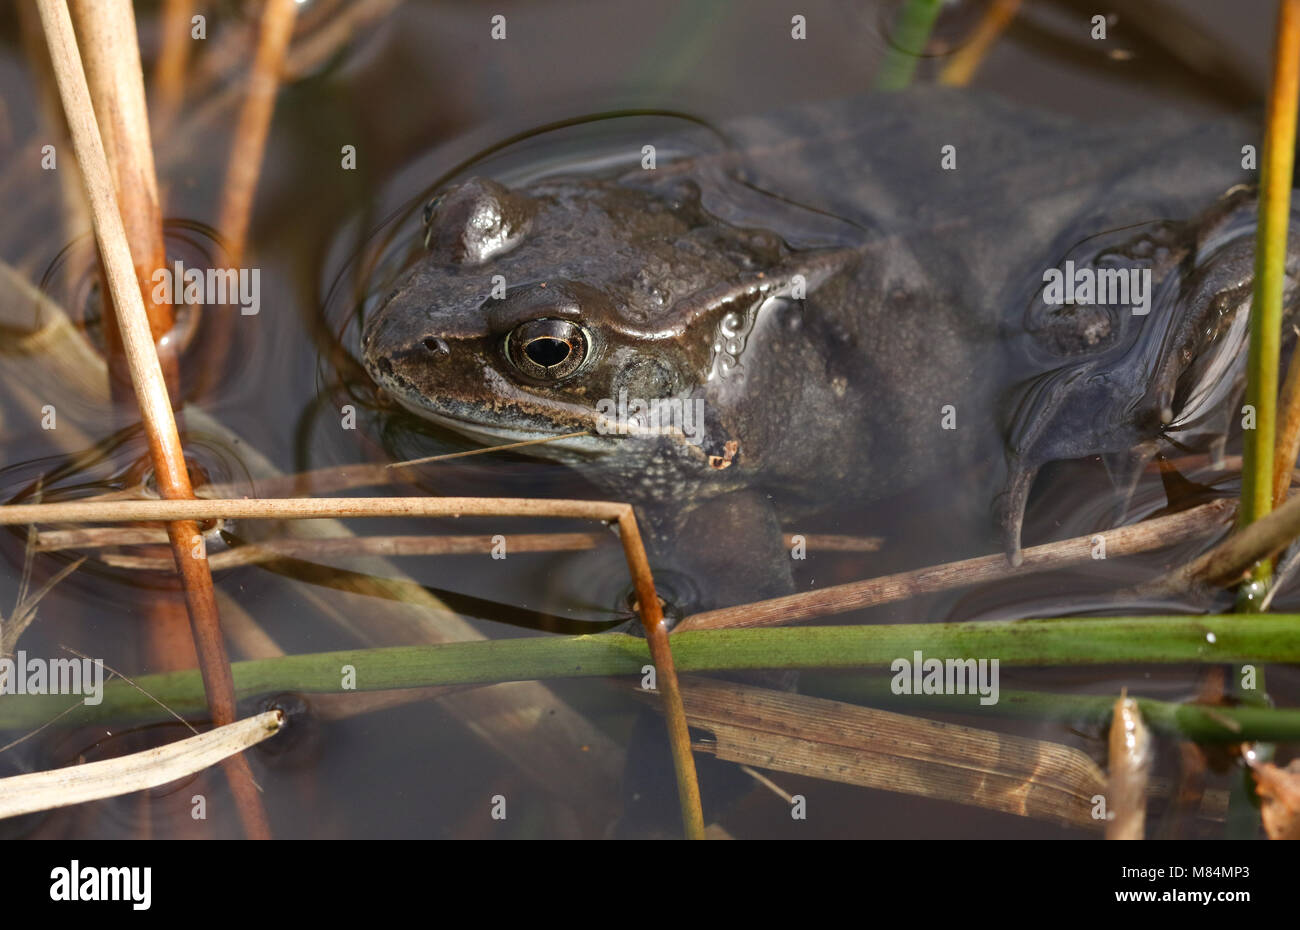 A Common Frog (Rana temporaria) just out of hibernation in spring waiting in the reeds at the edge of a pond for - Stock Image